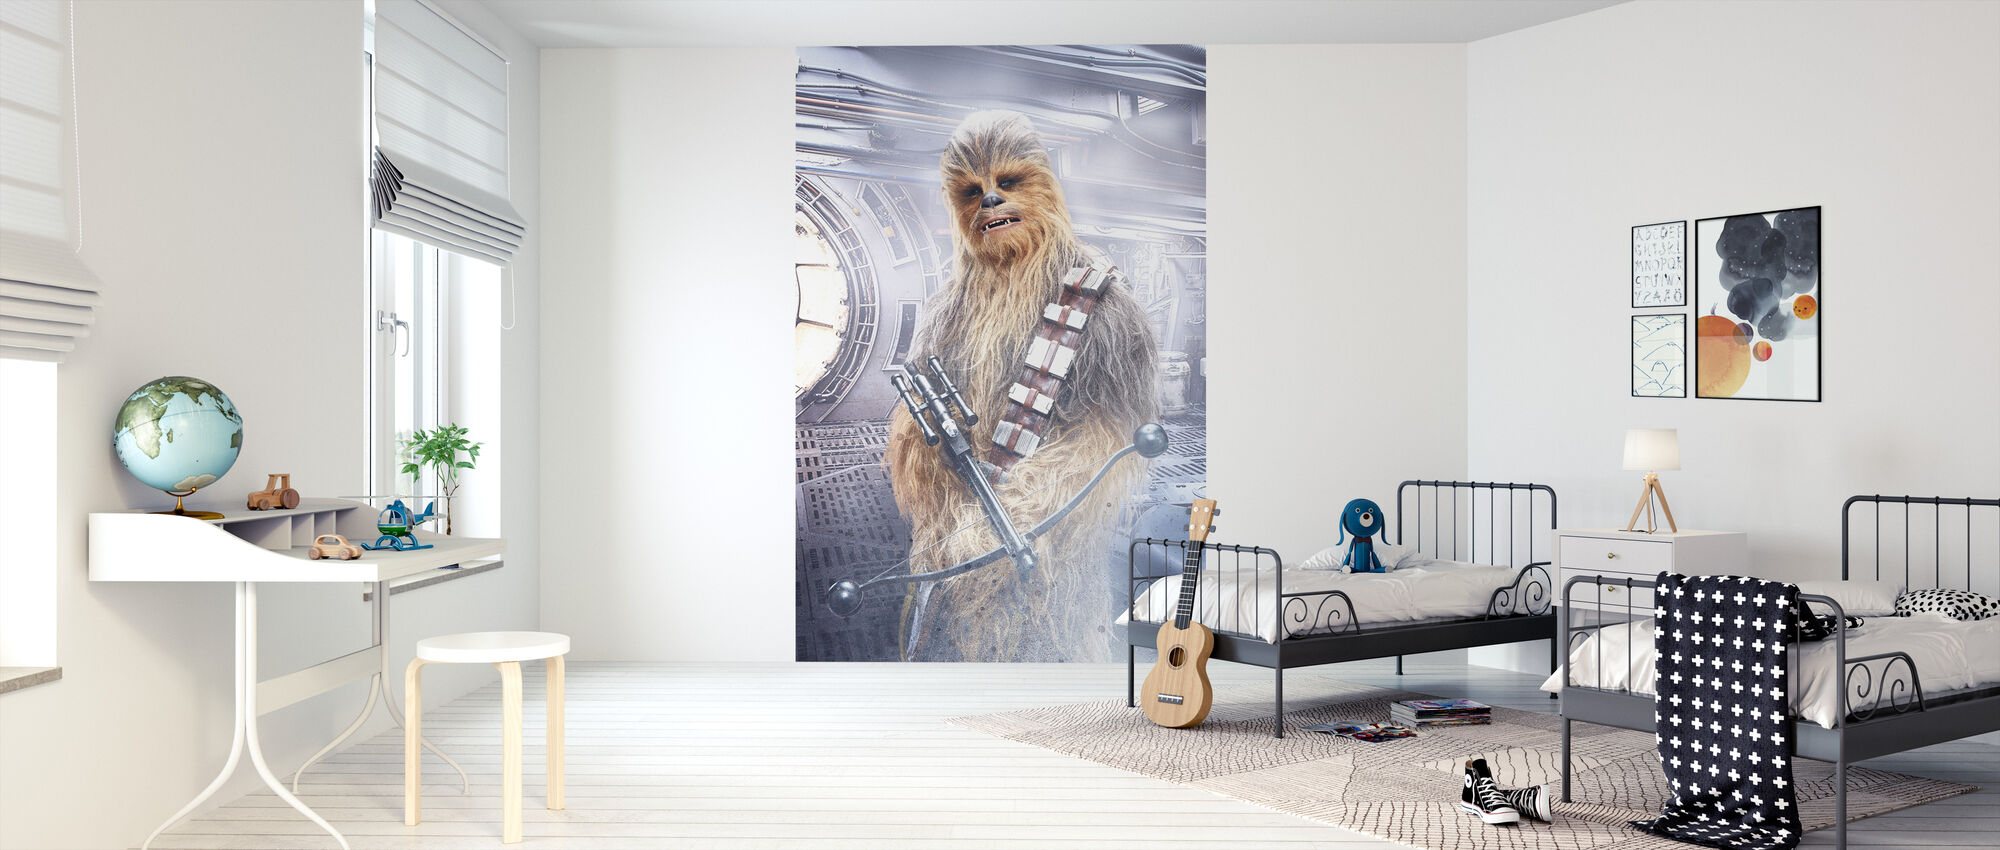 Star Wars - Chewbacca med Bowcaster - Tapet - Barnerom